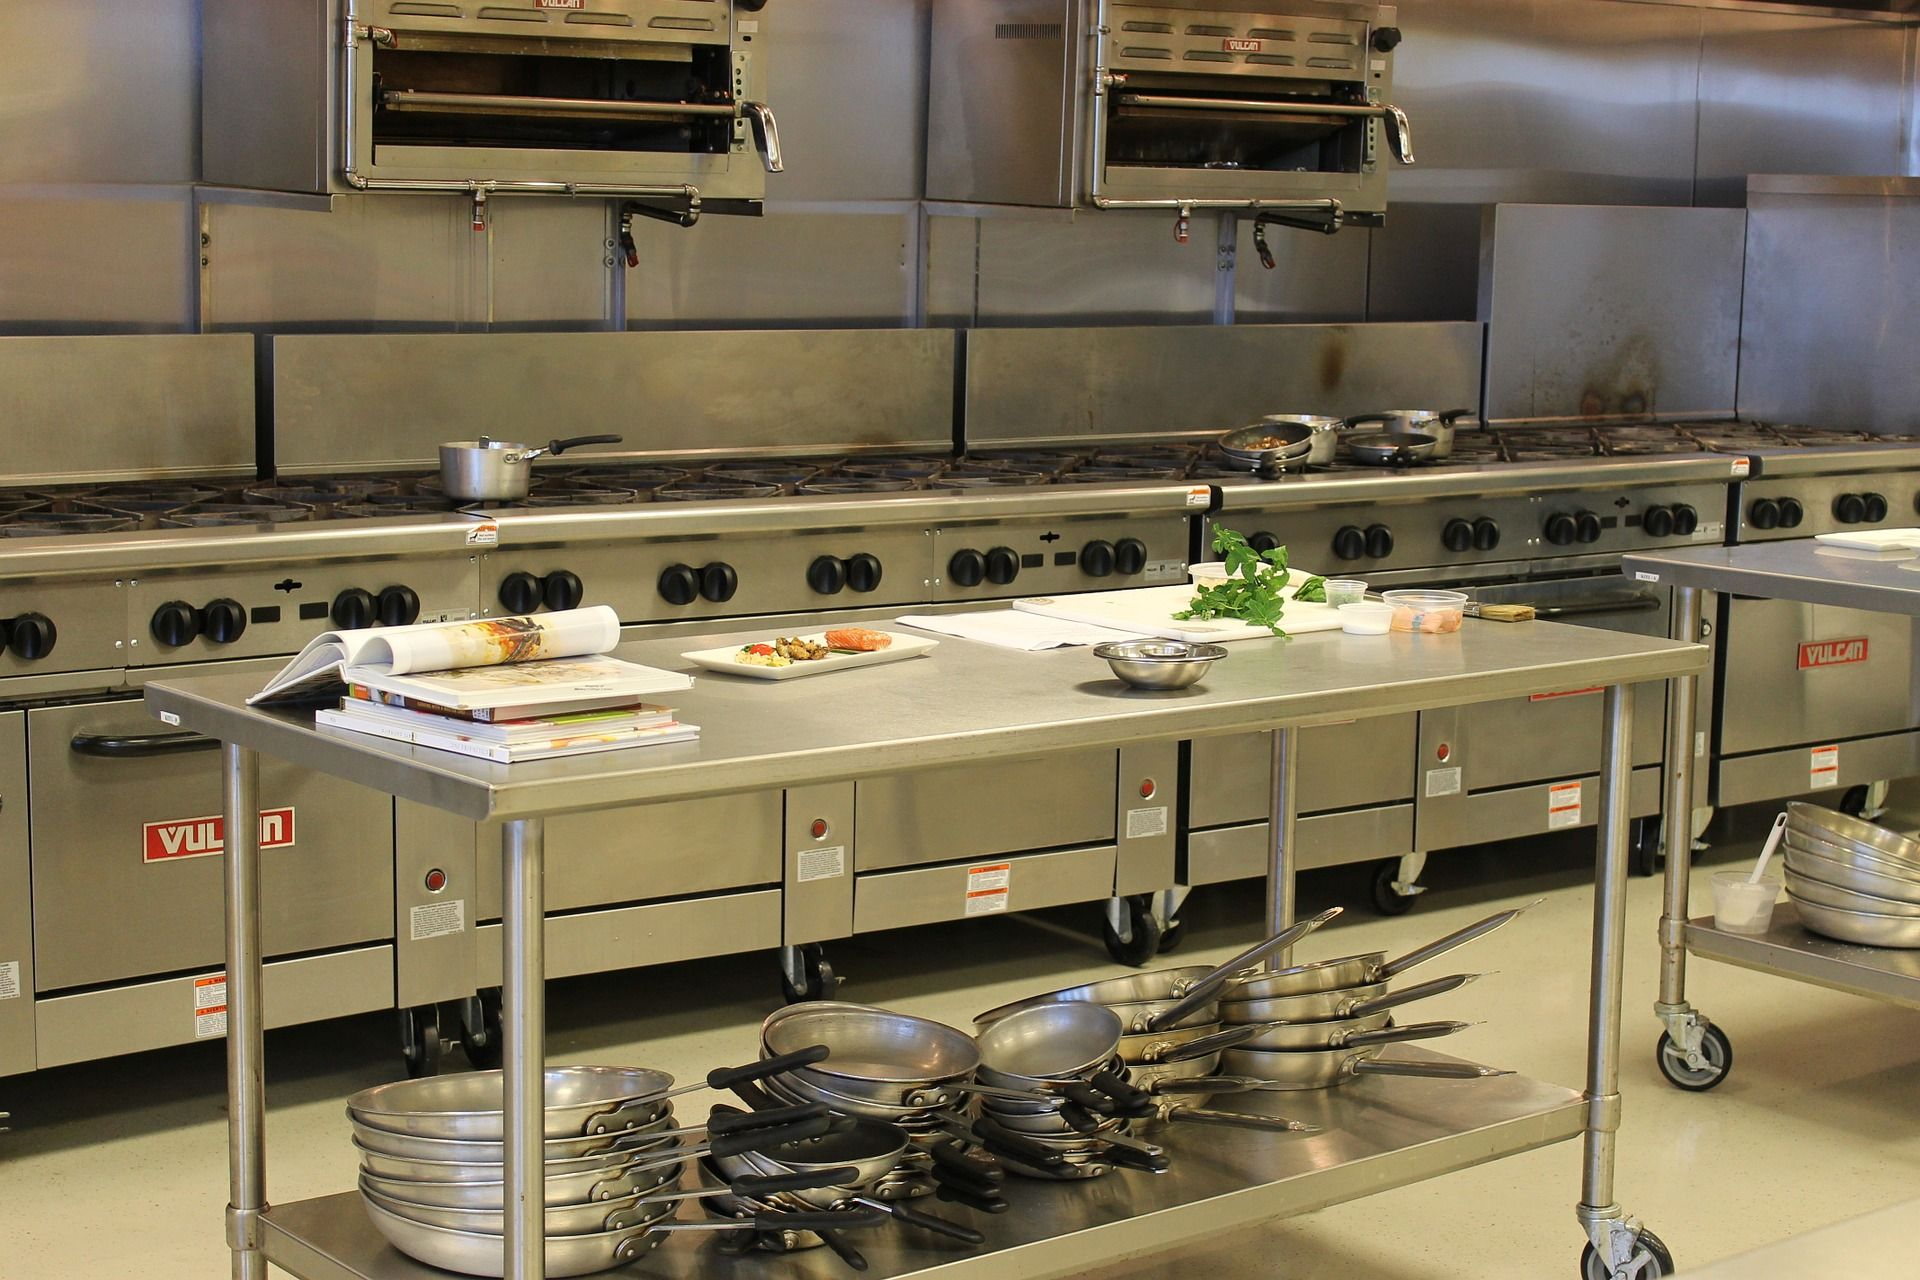 Using Frp Products For Commercial Kitchens Commercial Kitchen Commercial Kitchen Design Restaurant Kitchen Equipment